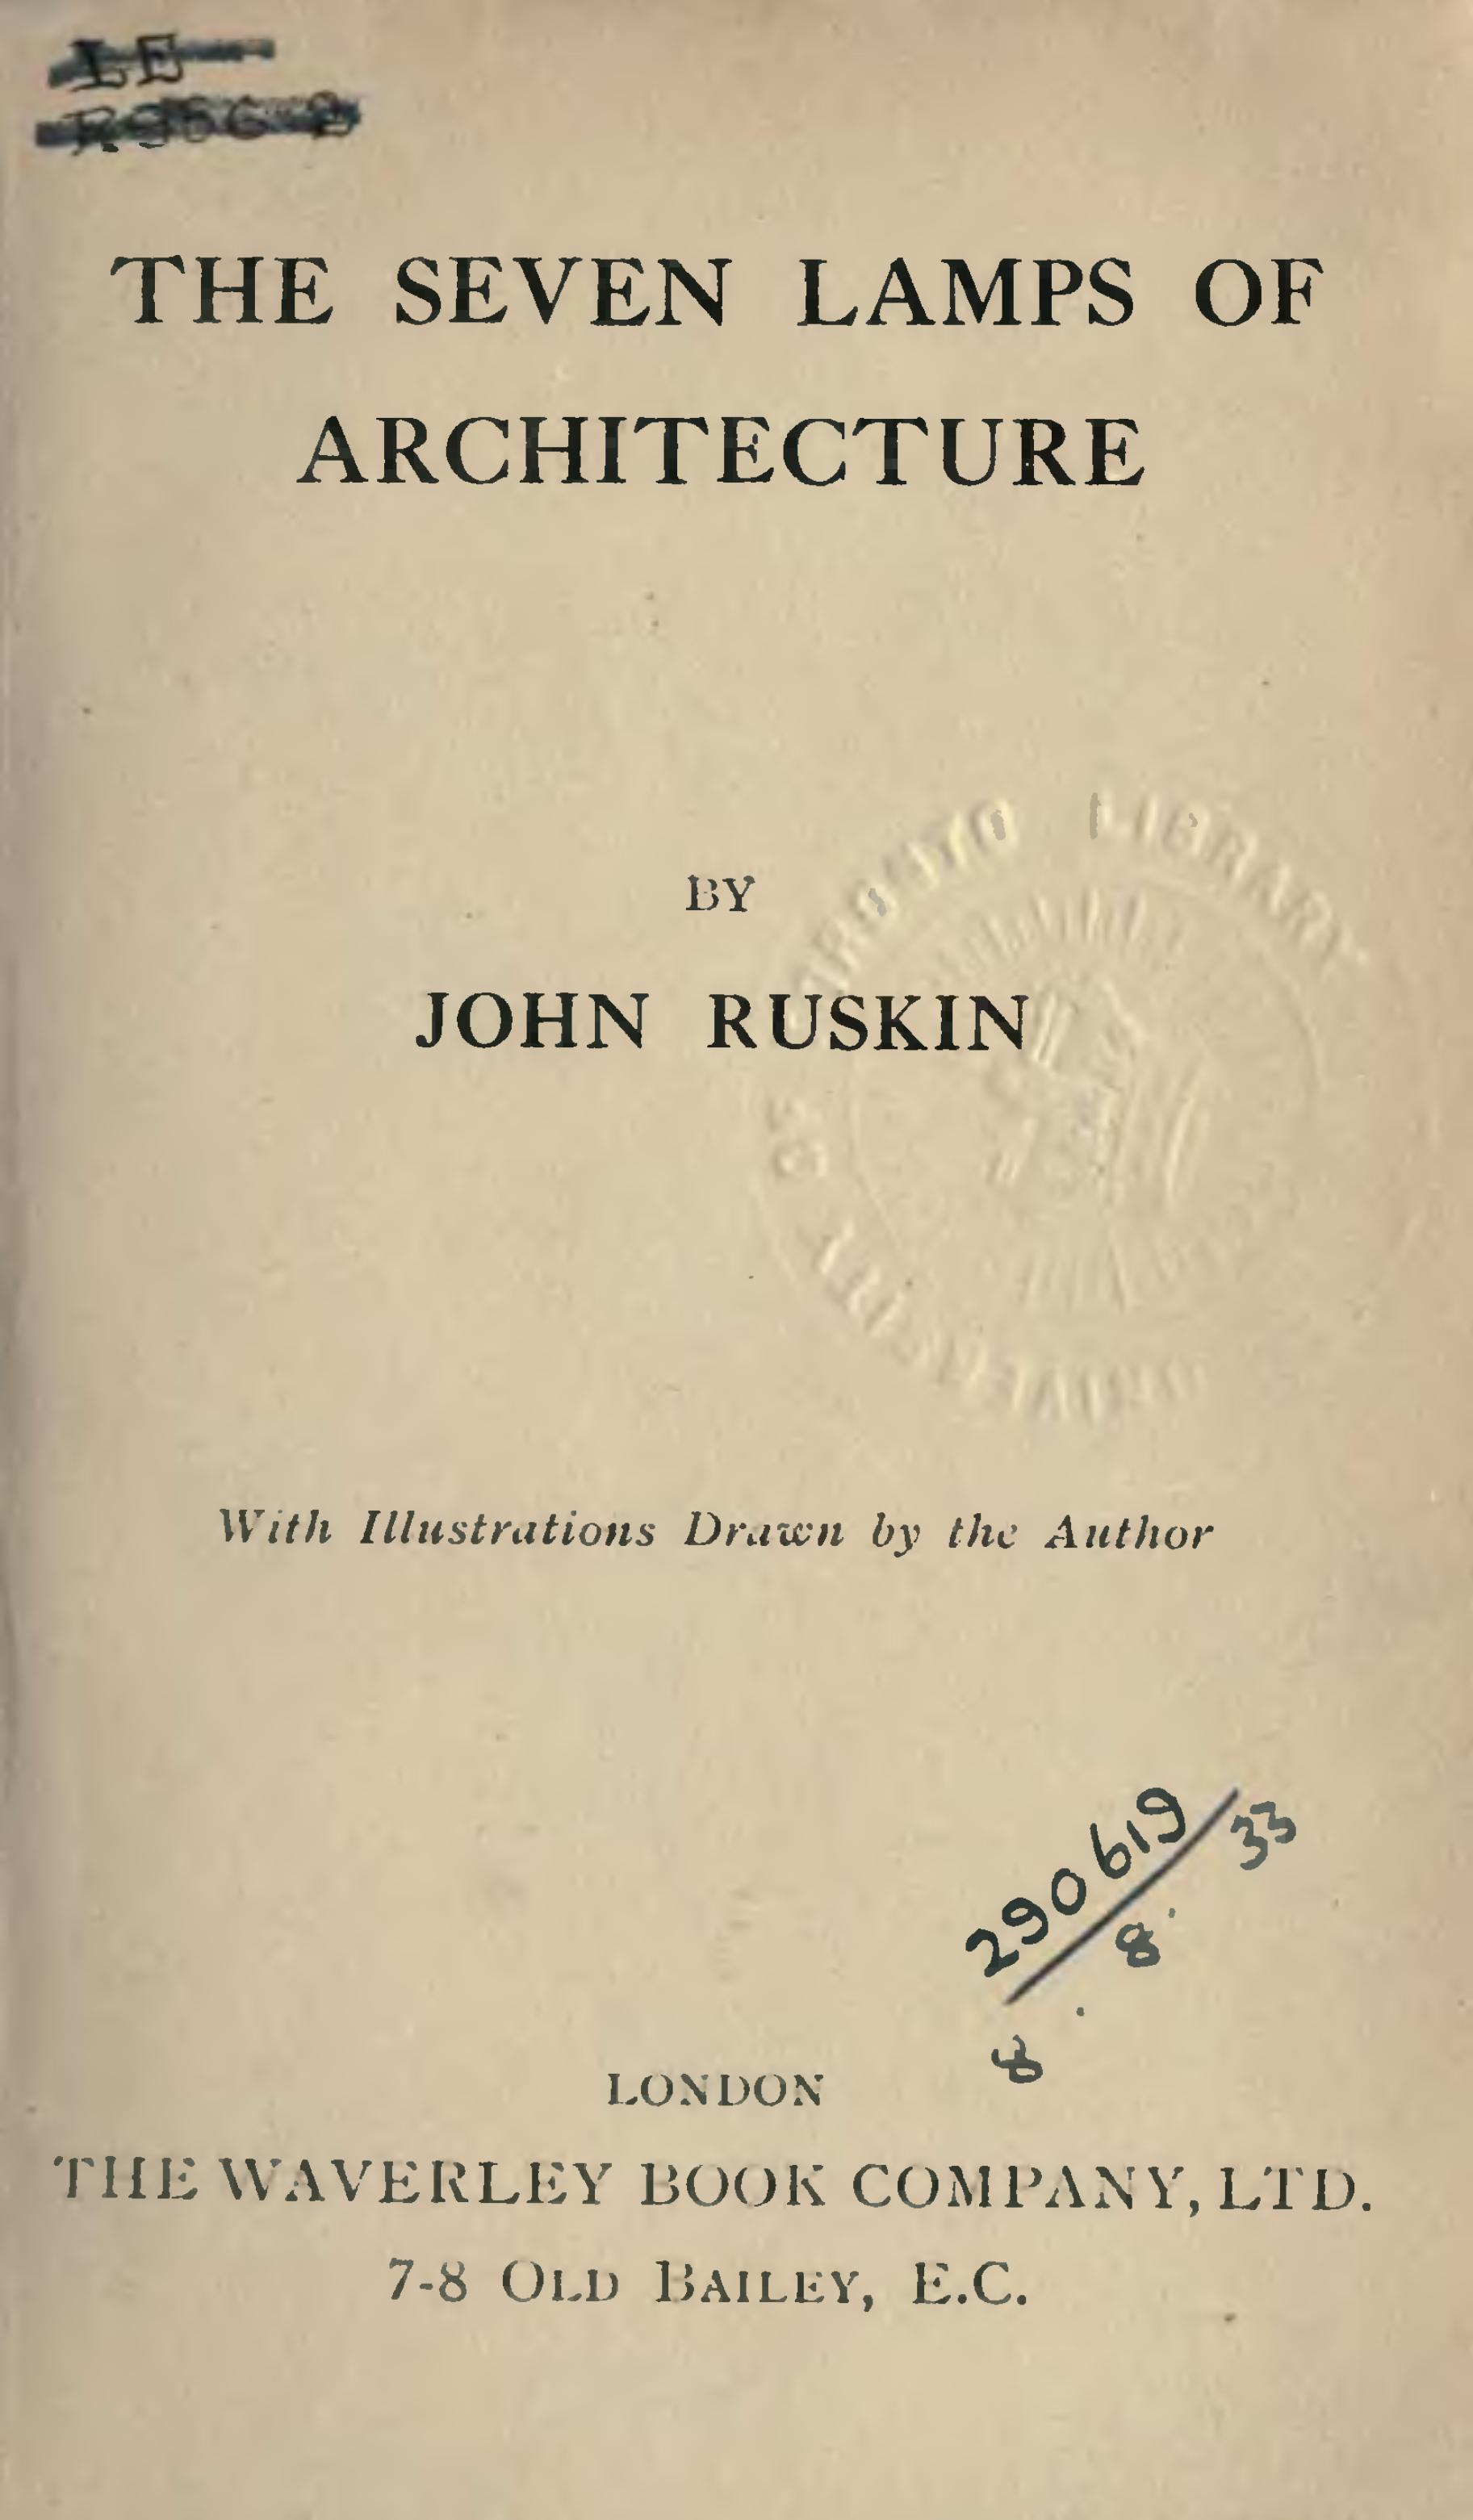 page ruskin  9